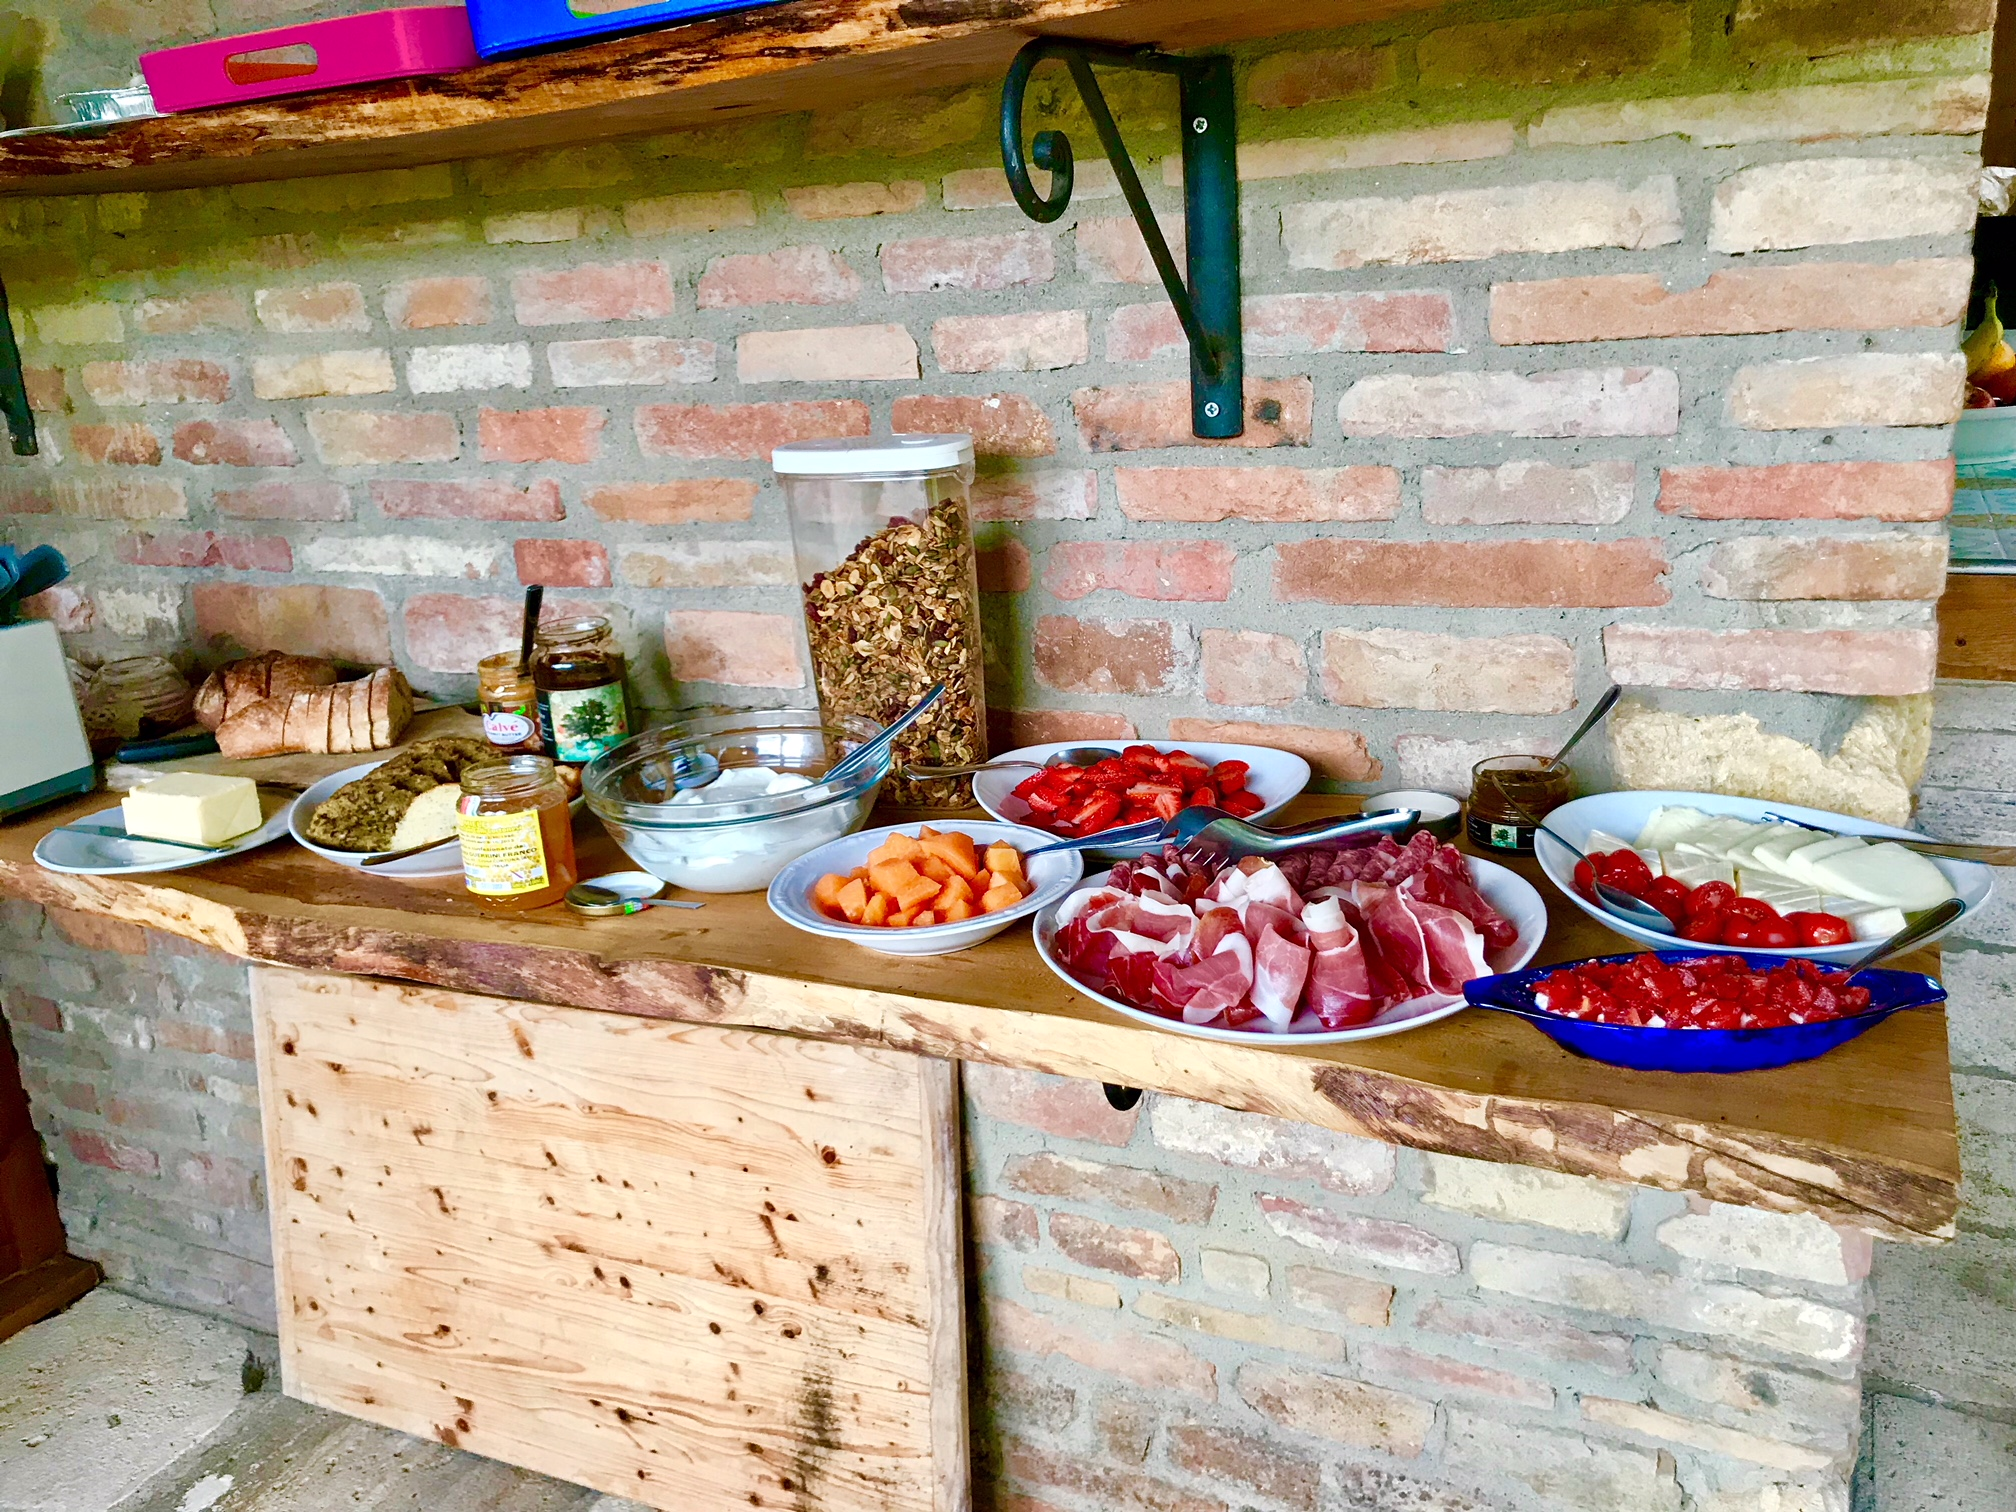 Local produce and charcuterie was always a feature at the villa